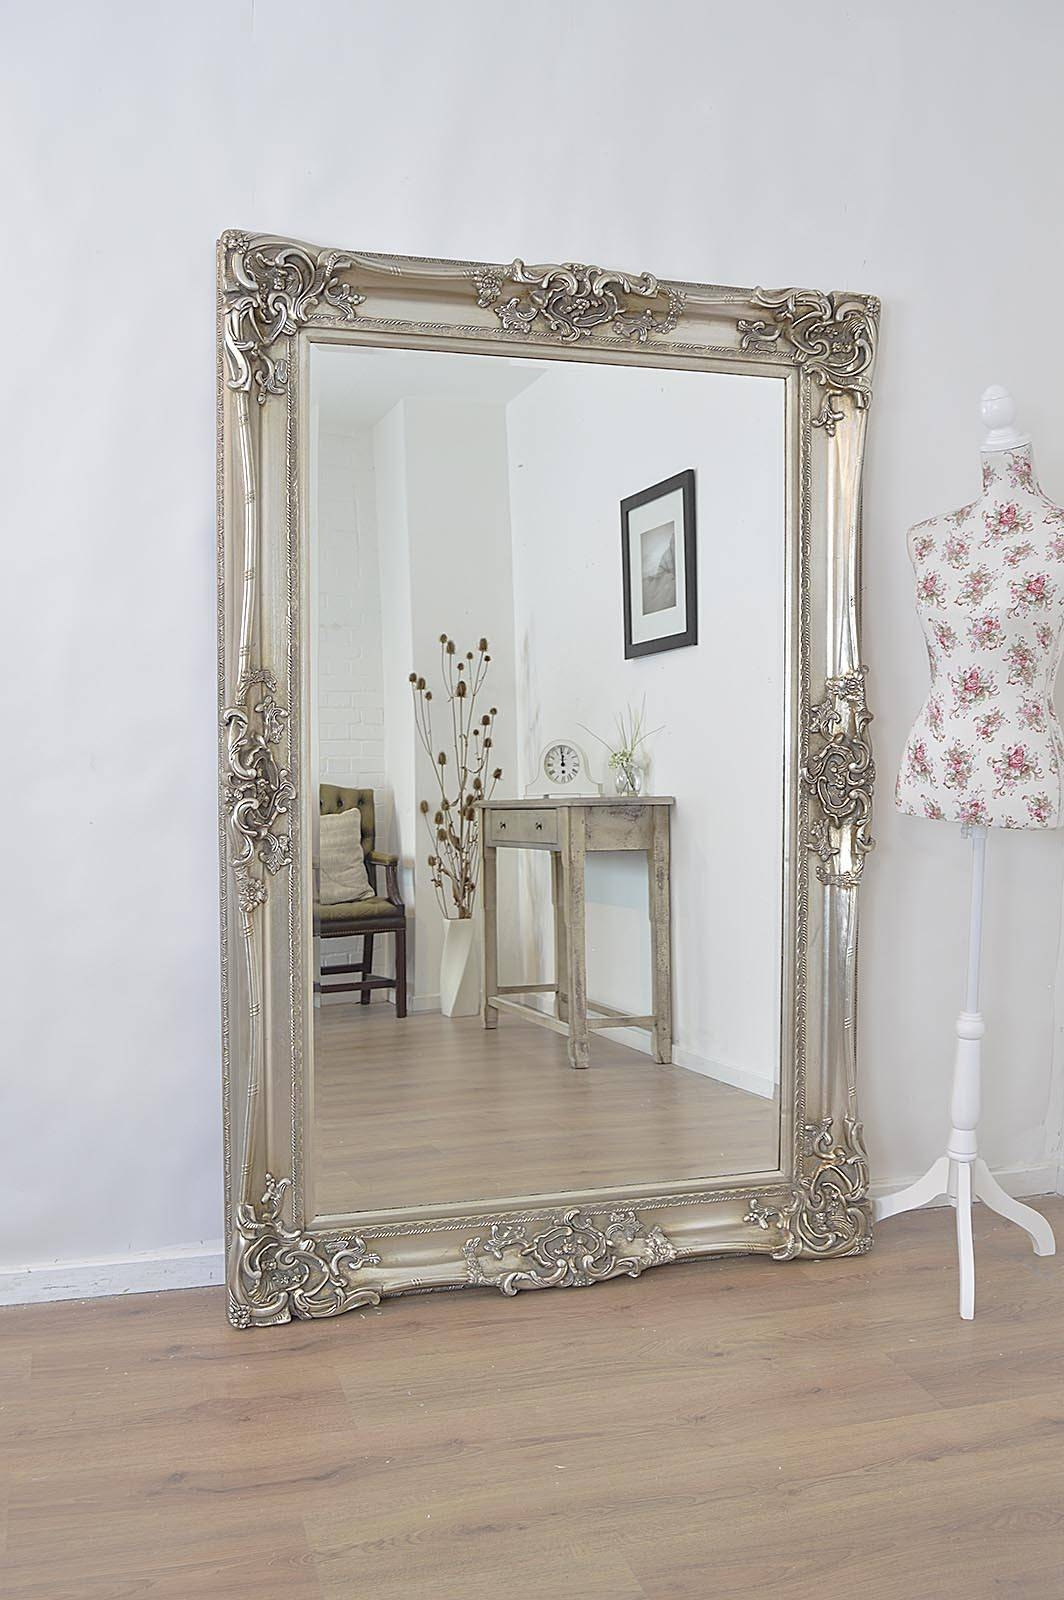 Antique Full Length Wall Mirrors Antique Wood Framed Wall Mirrors within Full Length Vintage Mirrors (Image 7 of 25)